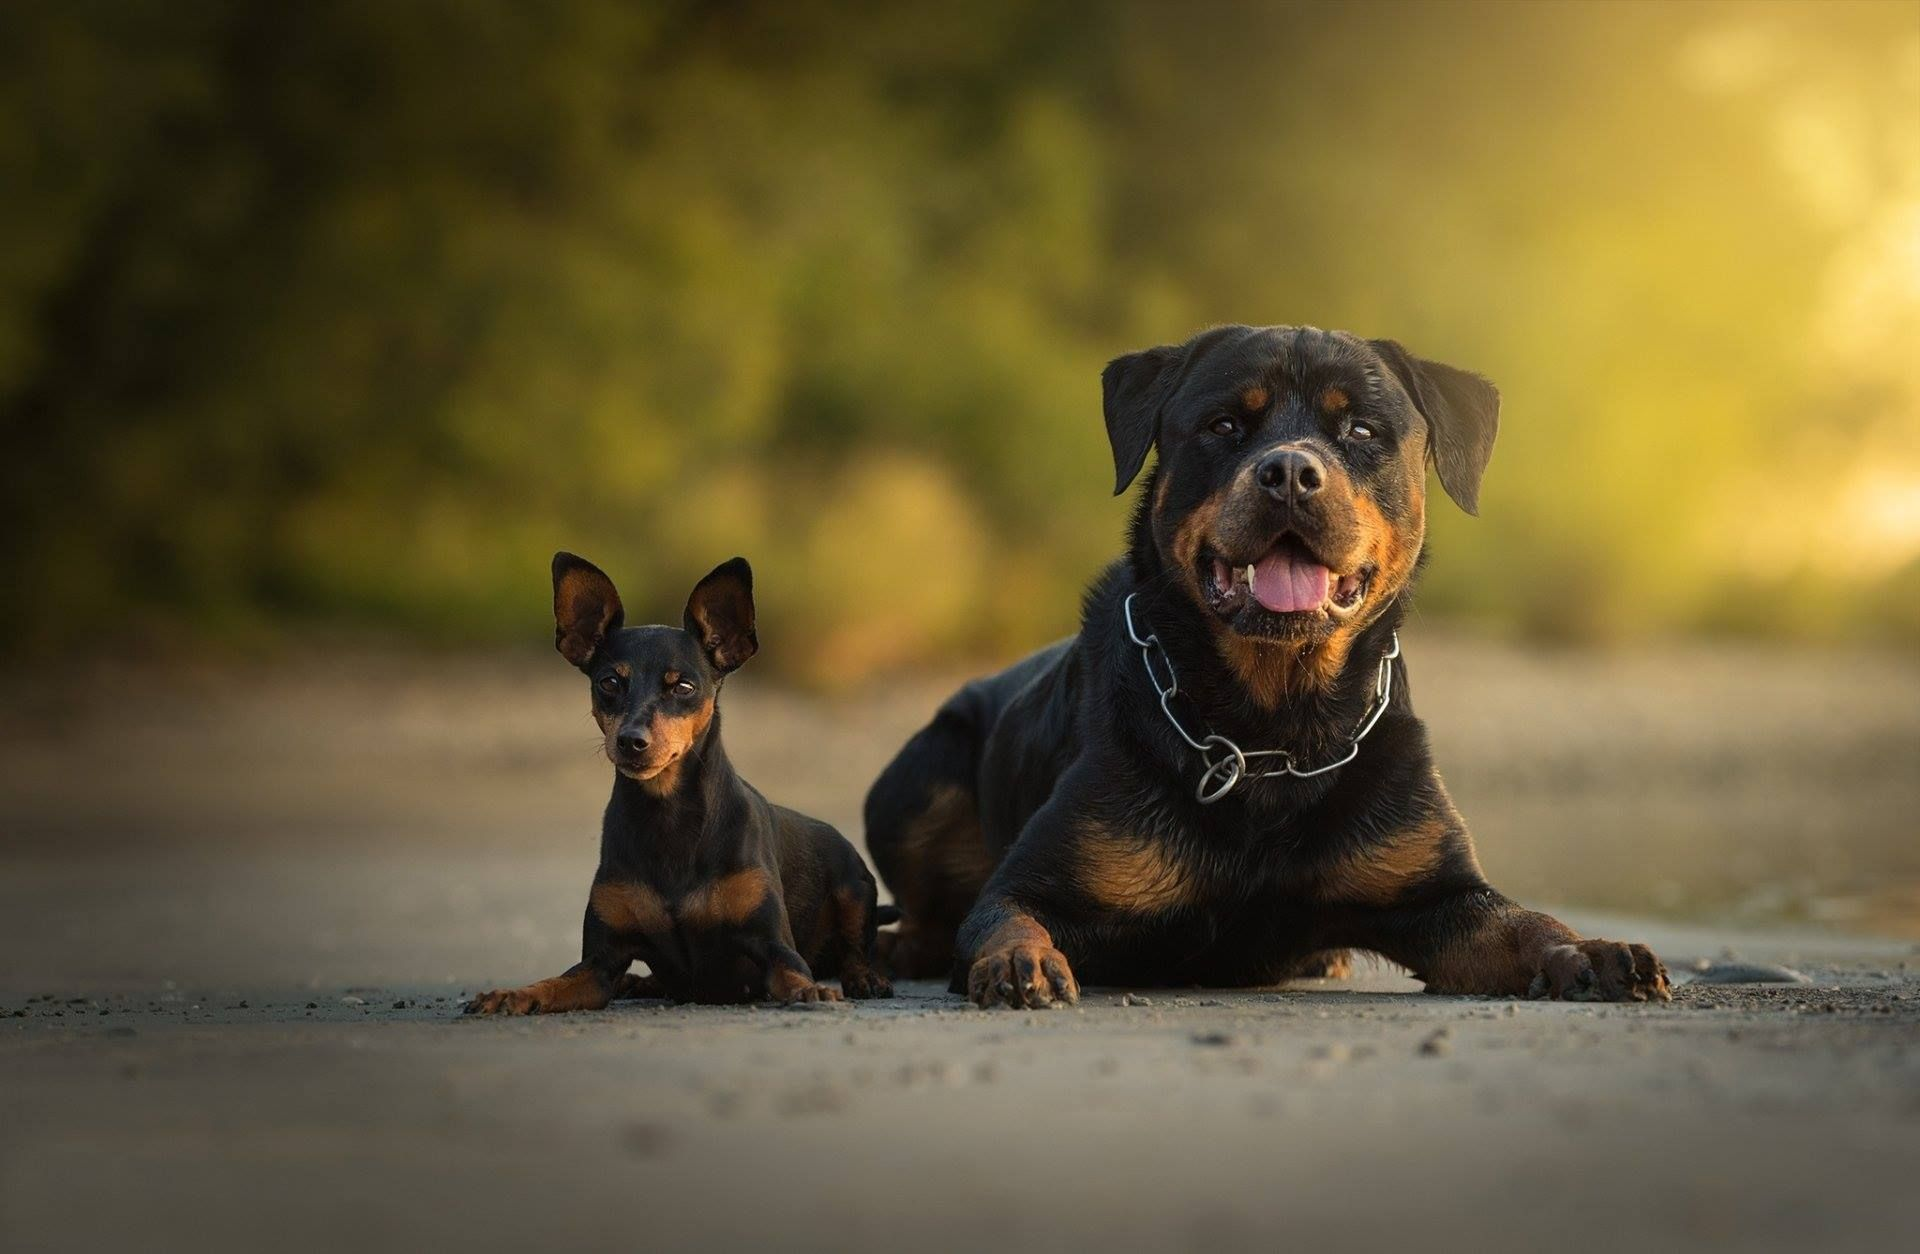 Pin By Annette Byrd On Bull Doggies Dogs Rottweiler Lovers Rottweiler